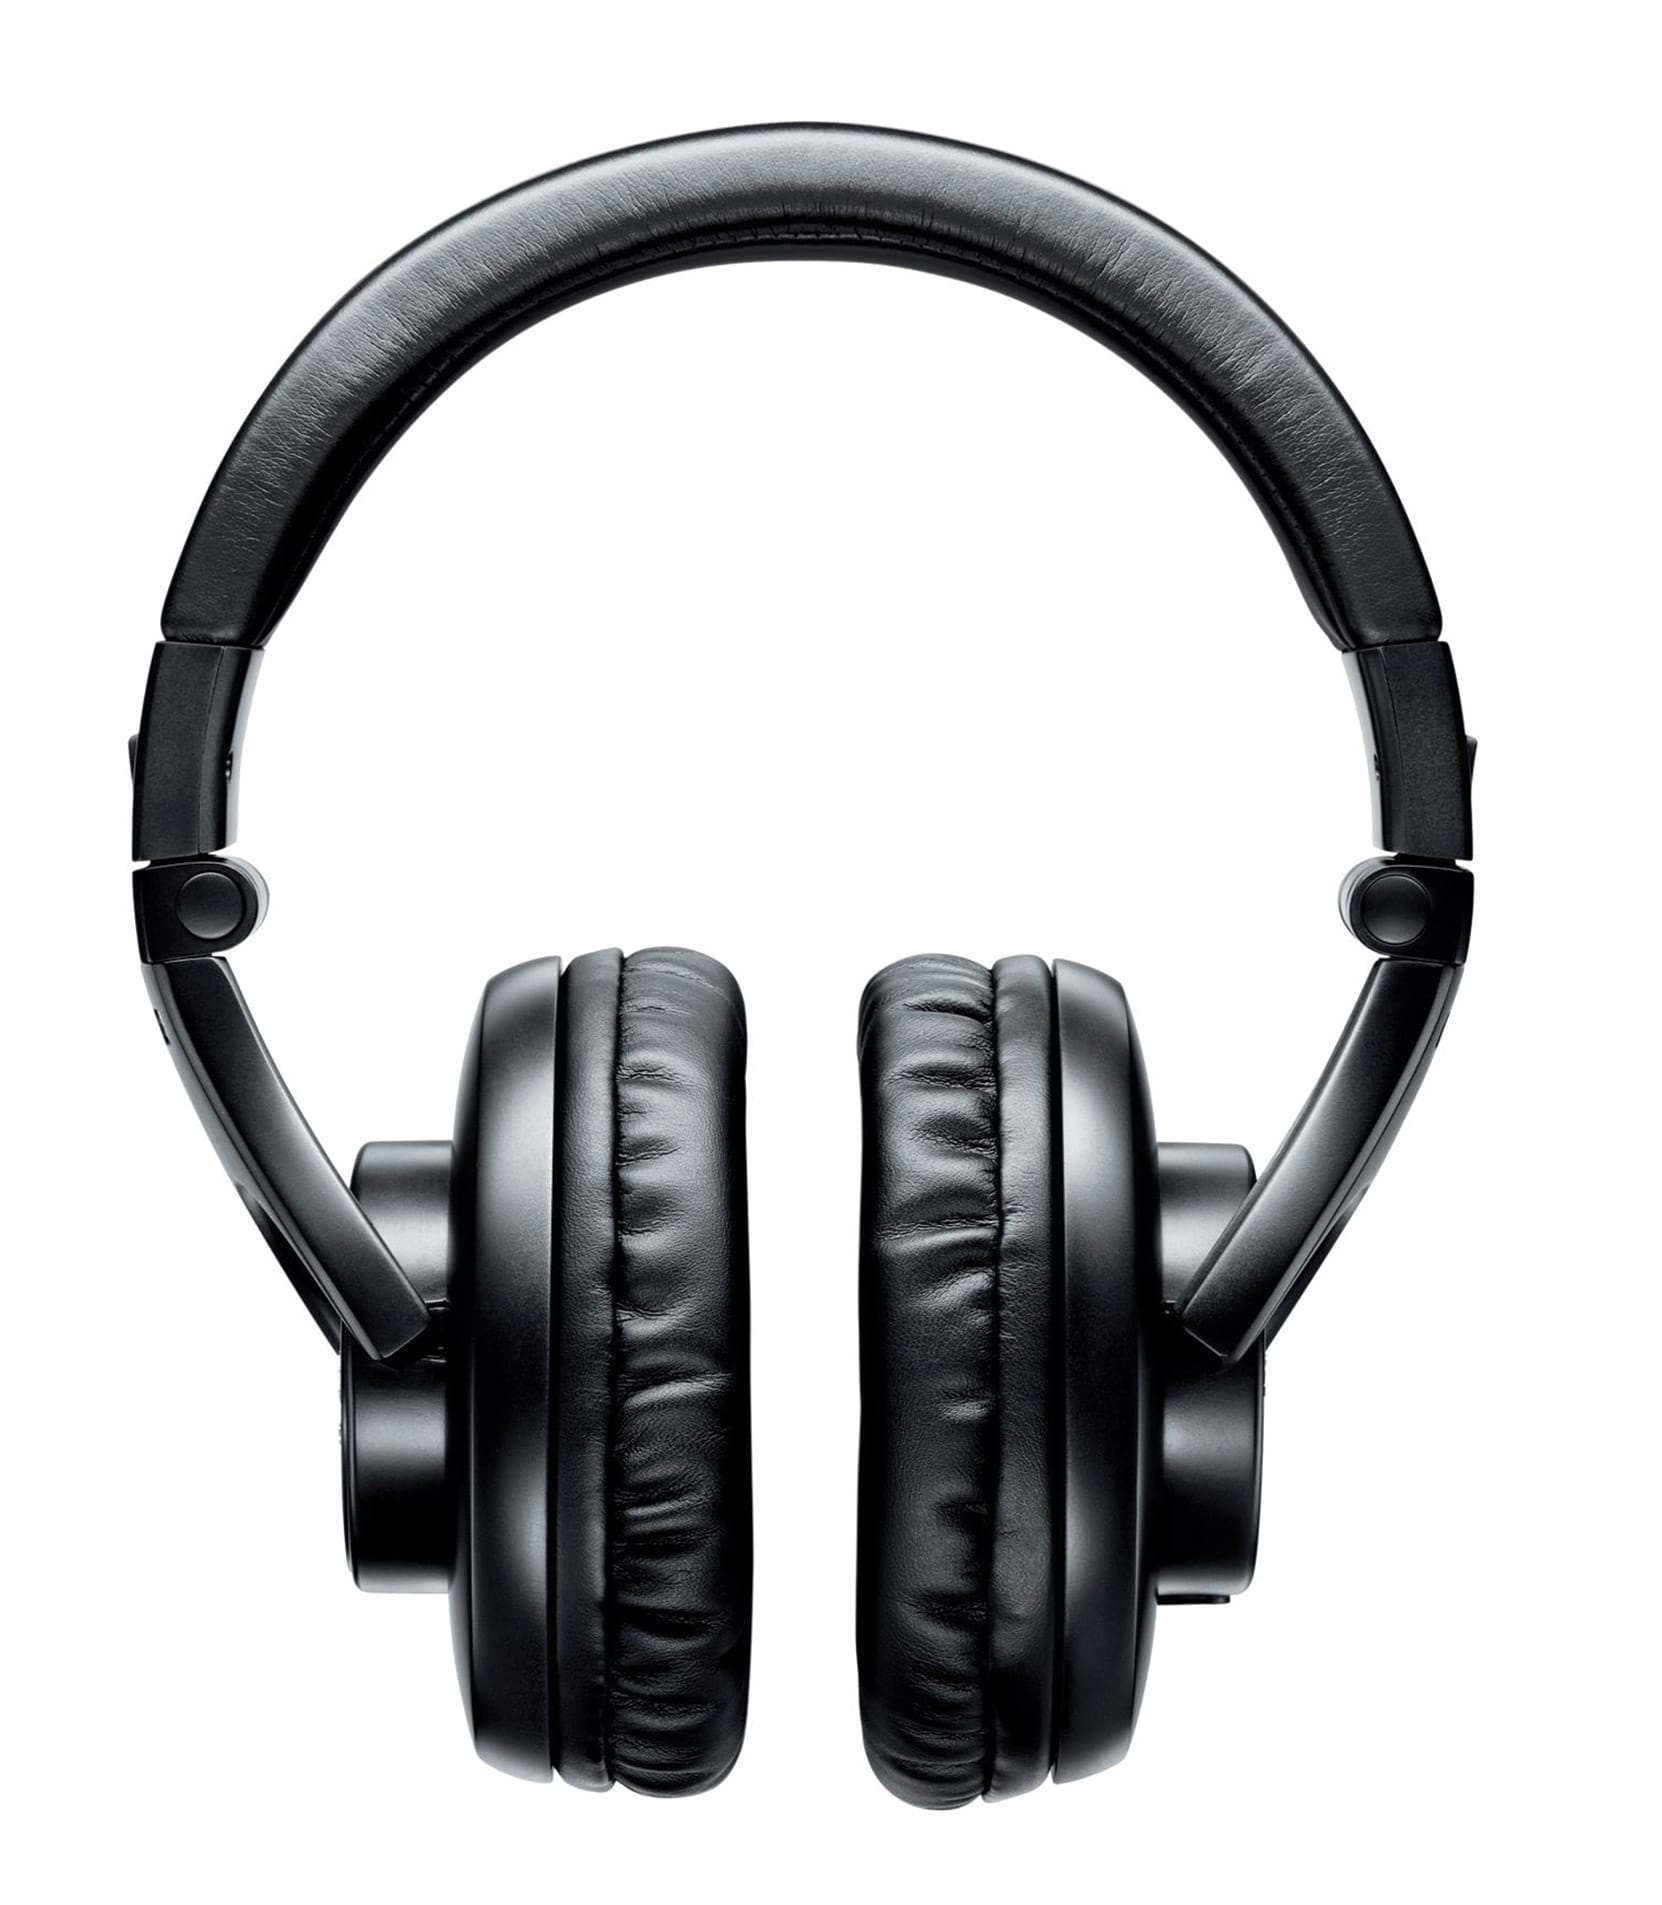 Buy shure - SRH440 E Professional Studio Headphones